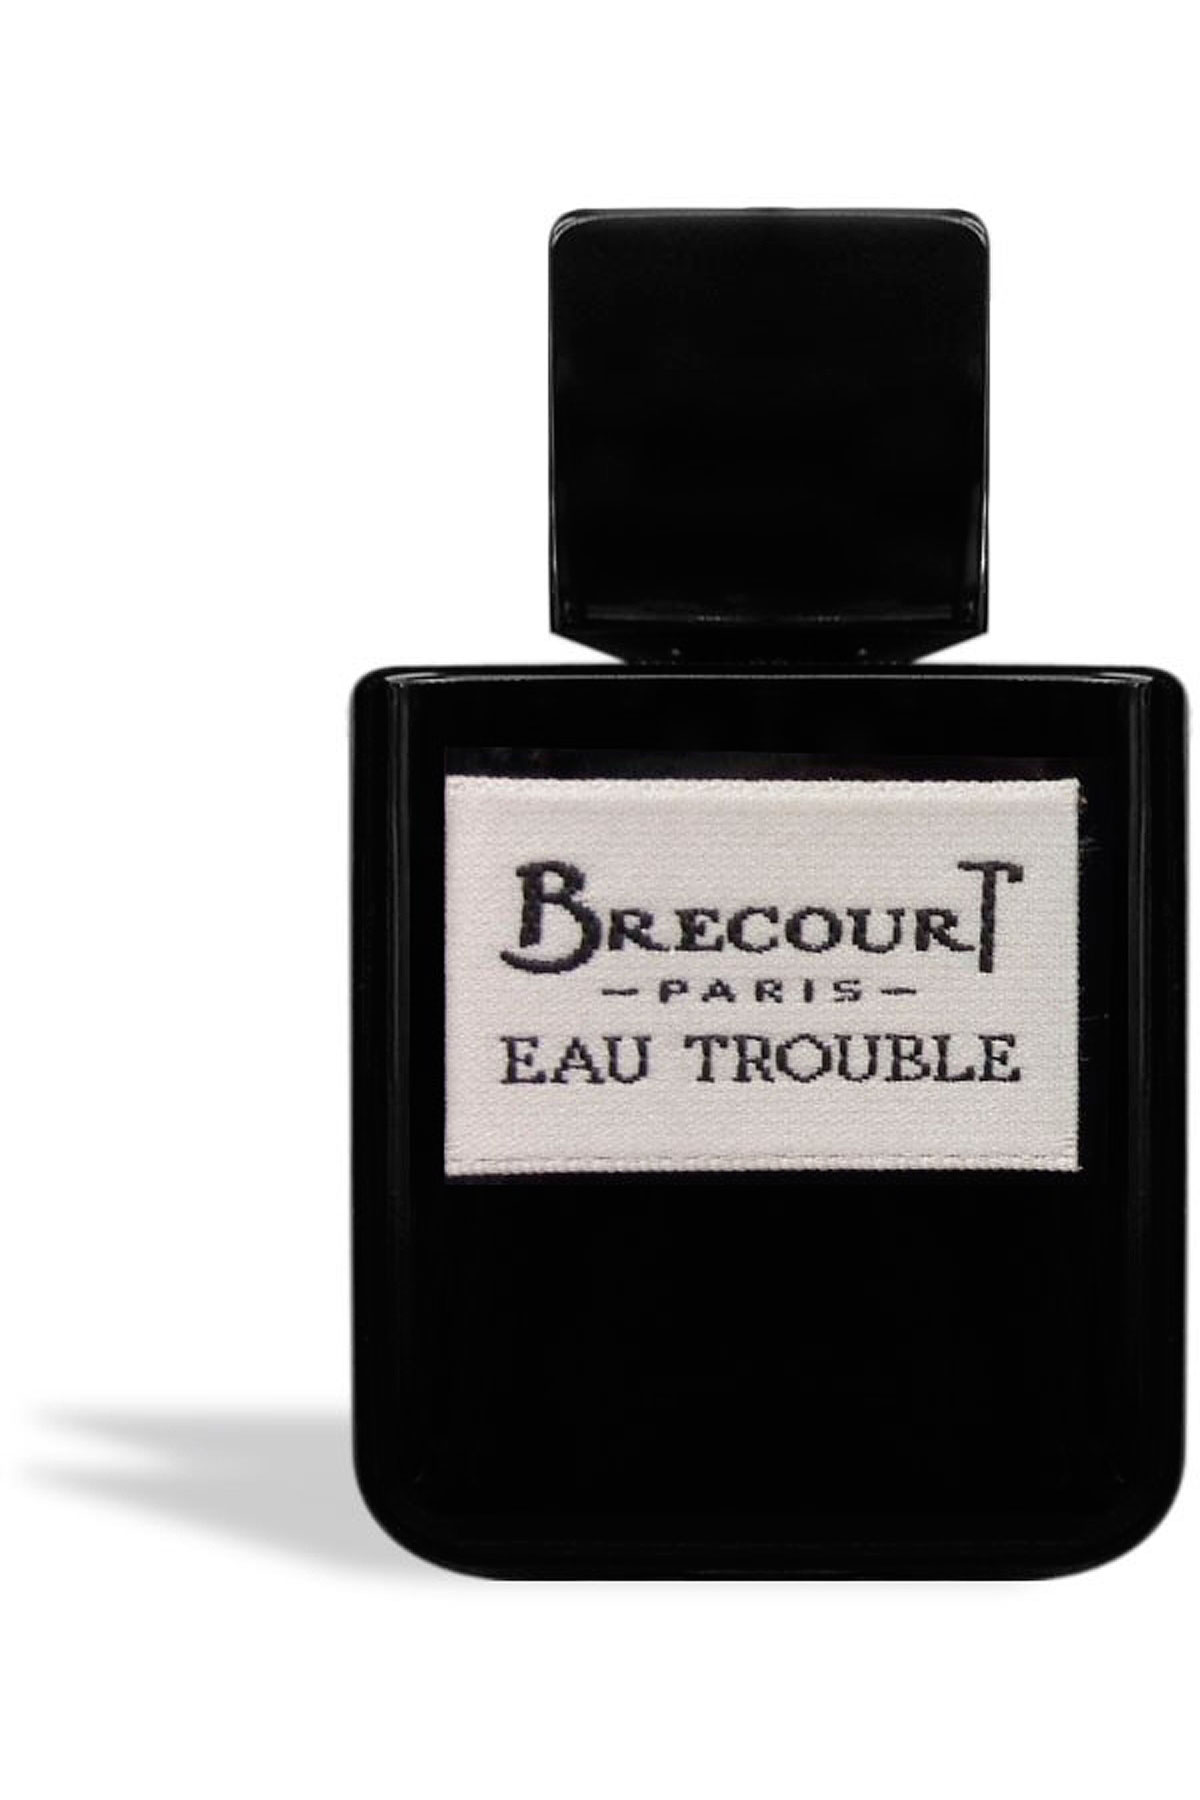 Brecourt Fragrances for Women, Eau Trouble - Eau De Parfum - 50 Ml, 2019, 50 ml